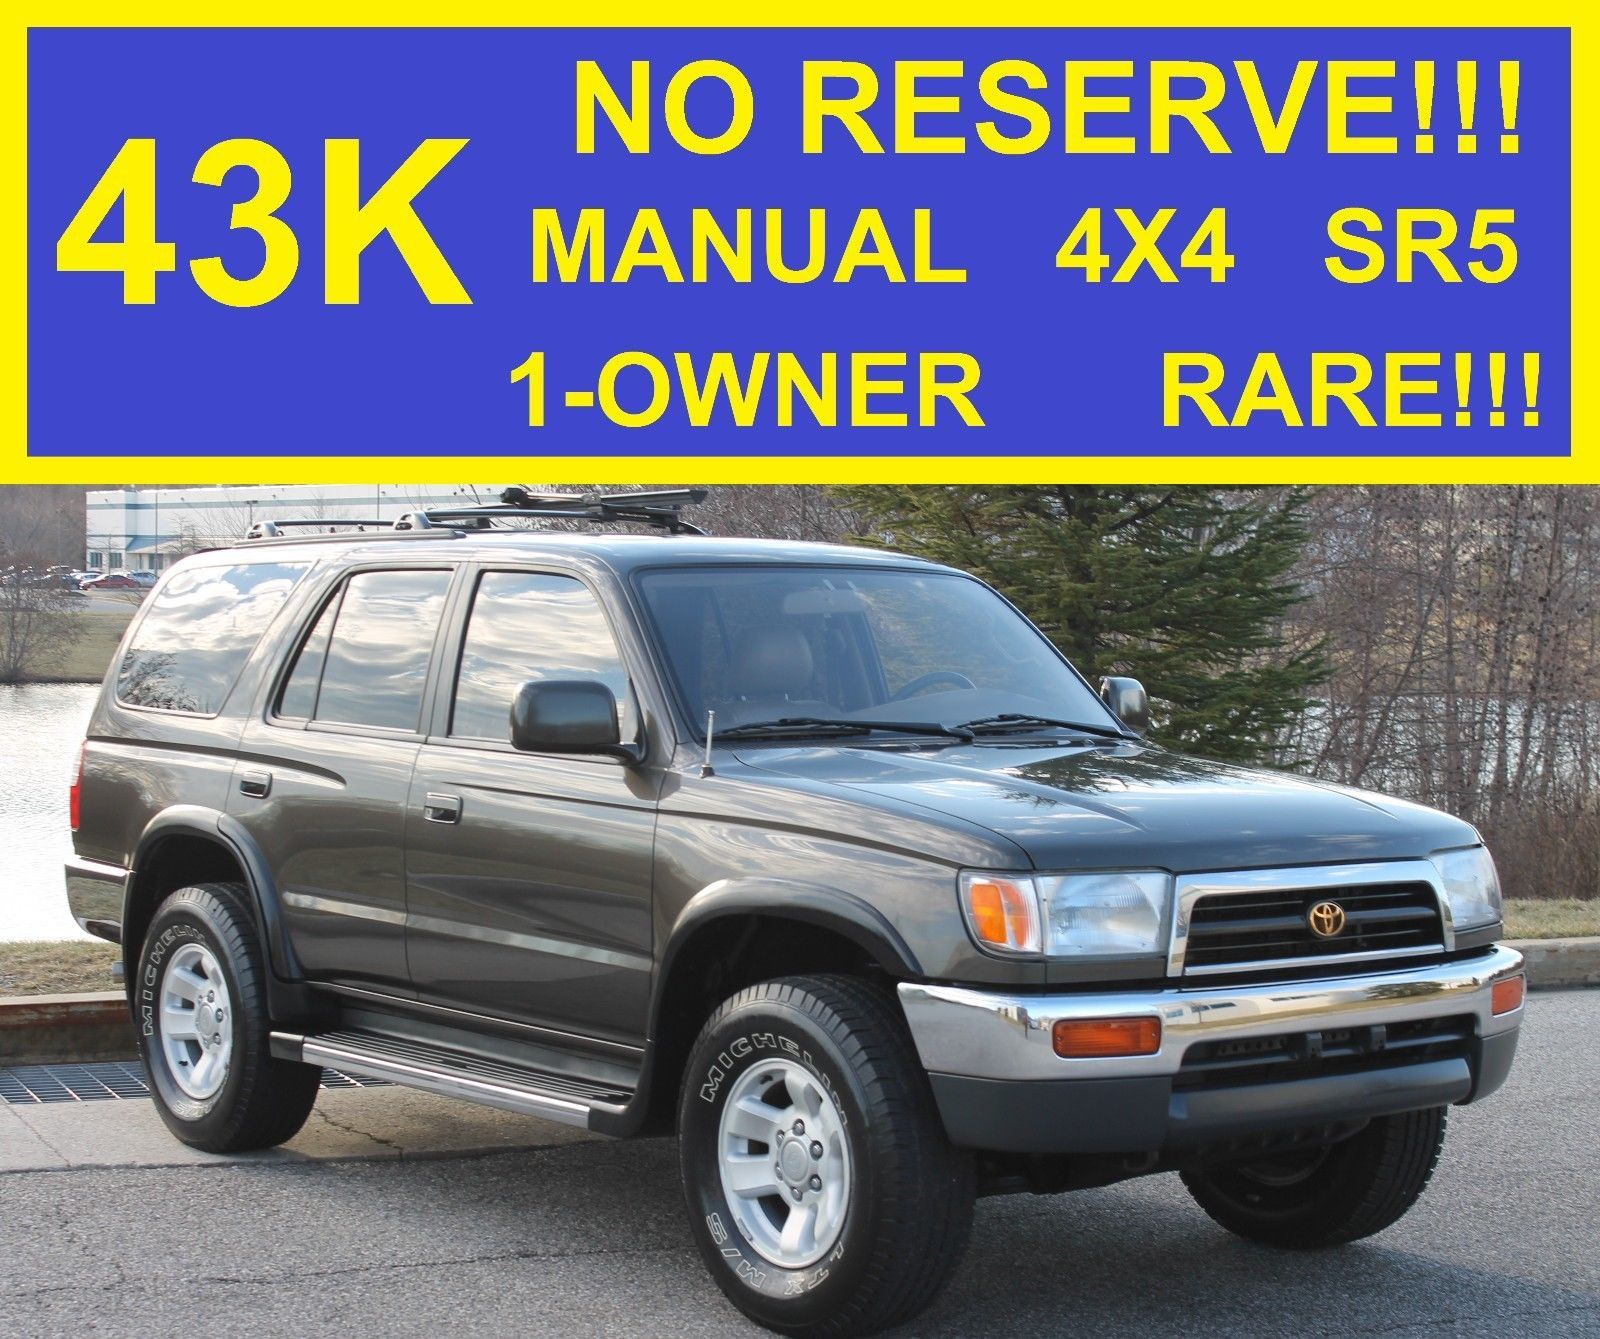 1998 toyota 4runner no reserve 43k miles 5 speed 1 owner pinterest rh pinterest com 1998 toyota 4runner owners manual online 1998 toyota 4runner service manual pdf